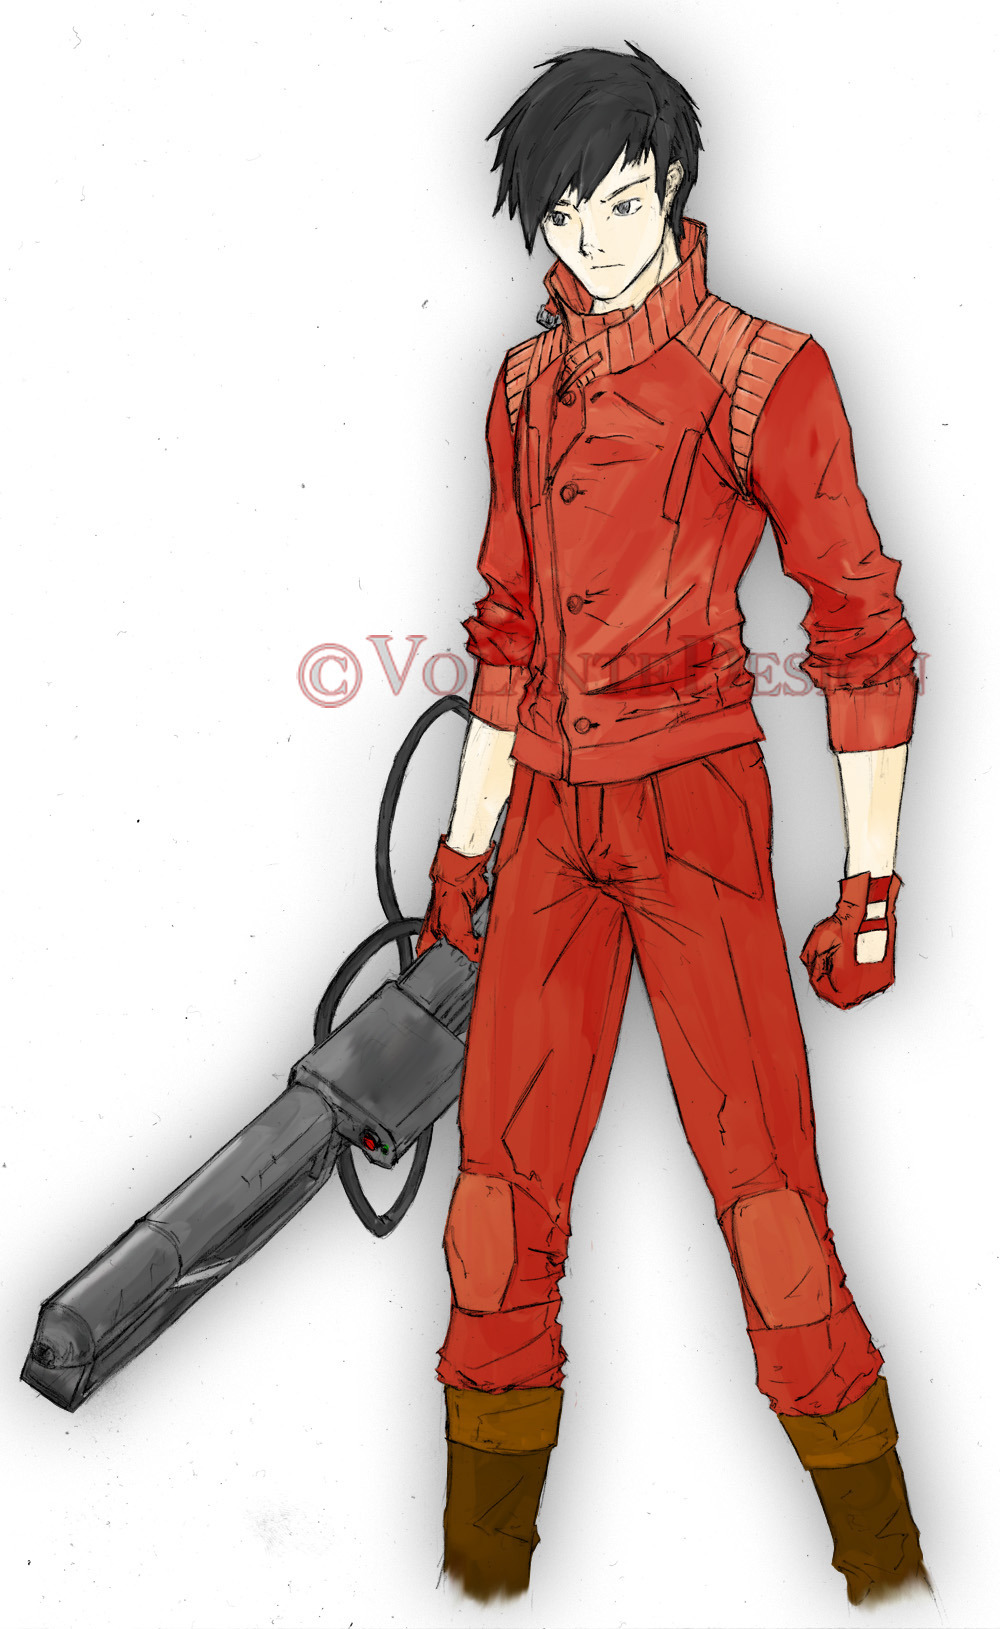 Kaneda. Complete with Pill logo on the back.